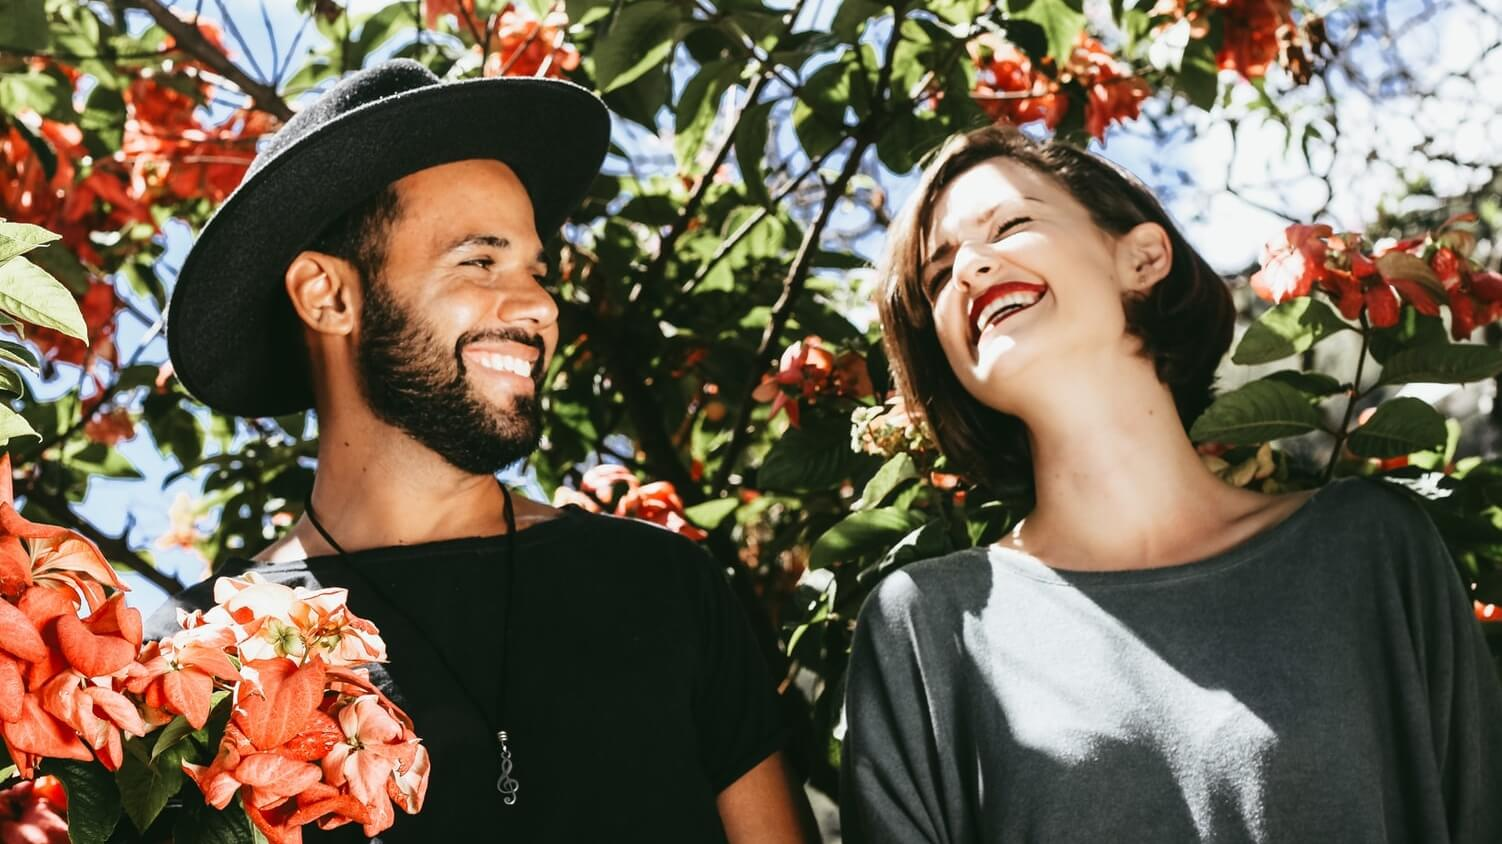 You Could Find True Love With This New Vegan Matchmaking Service